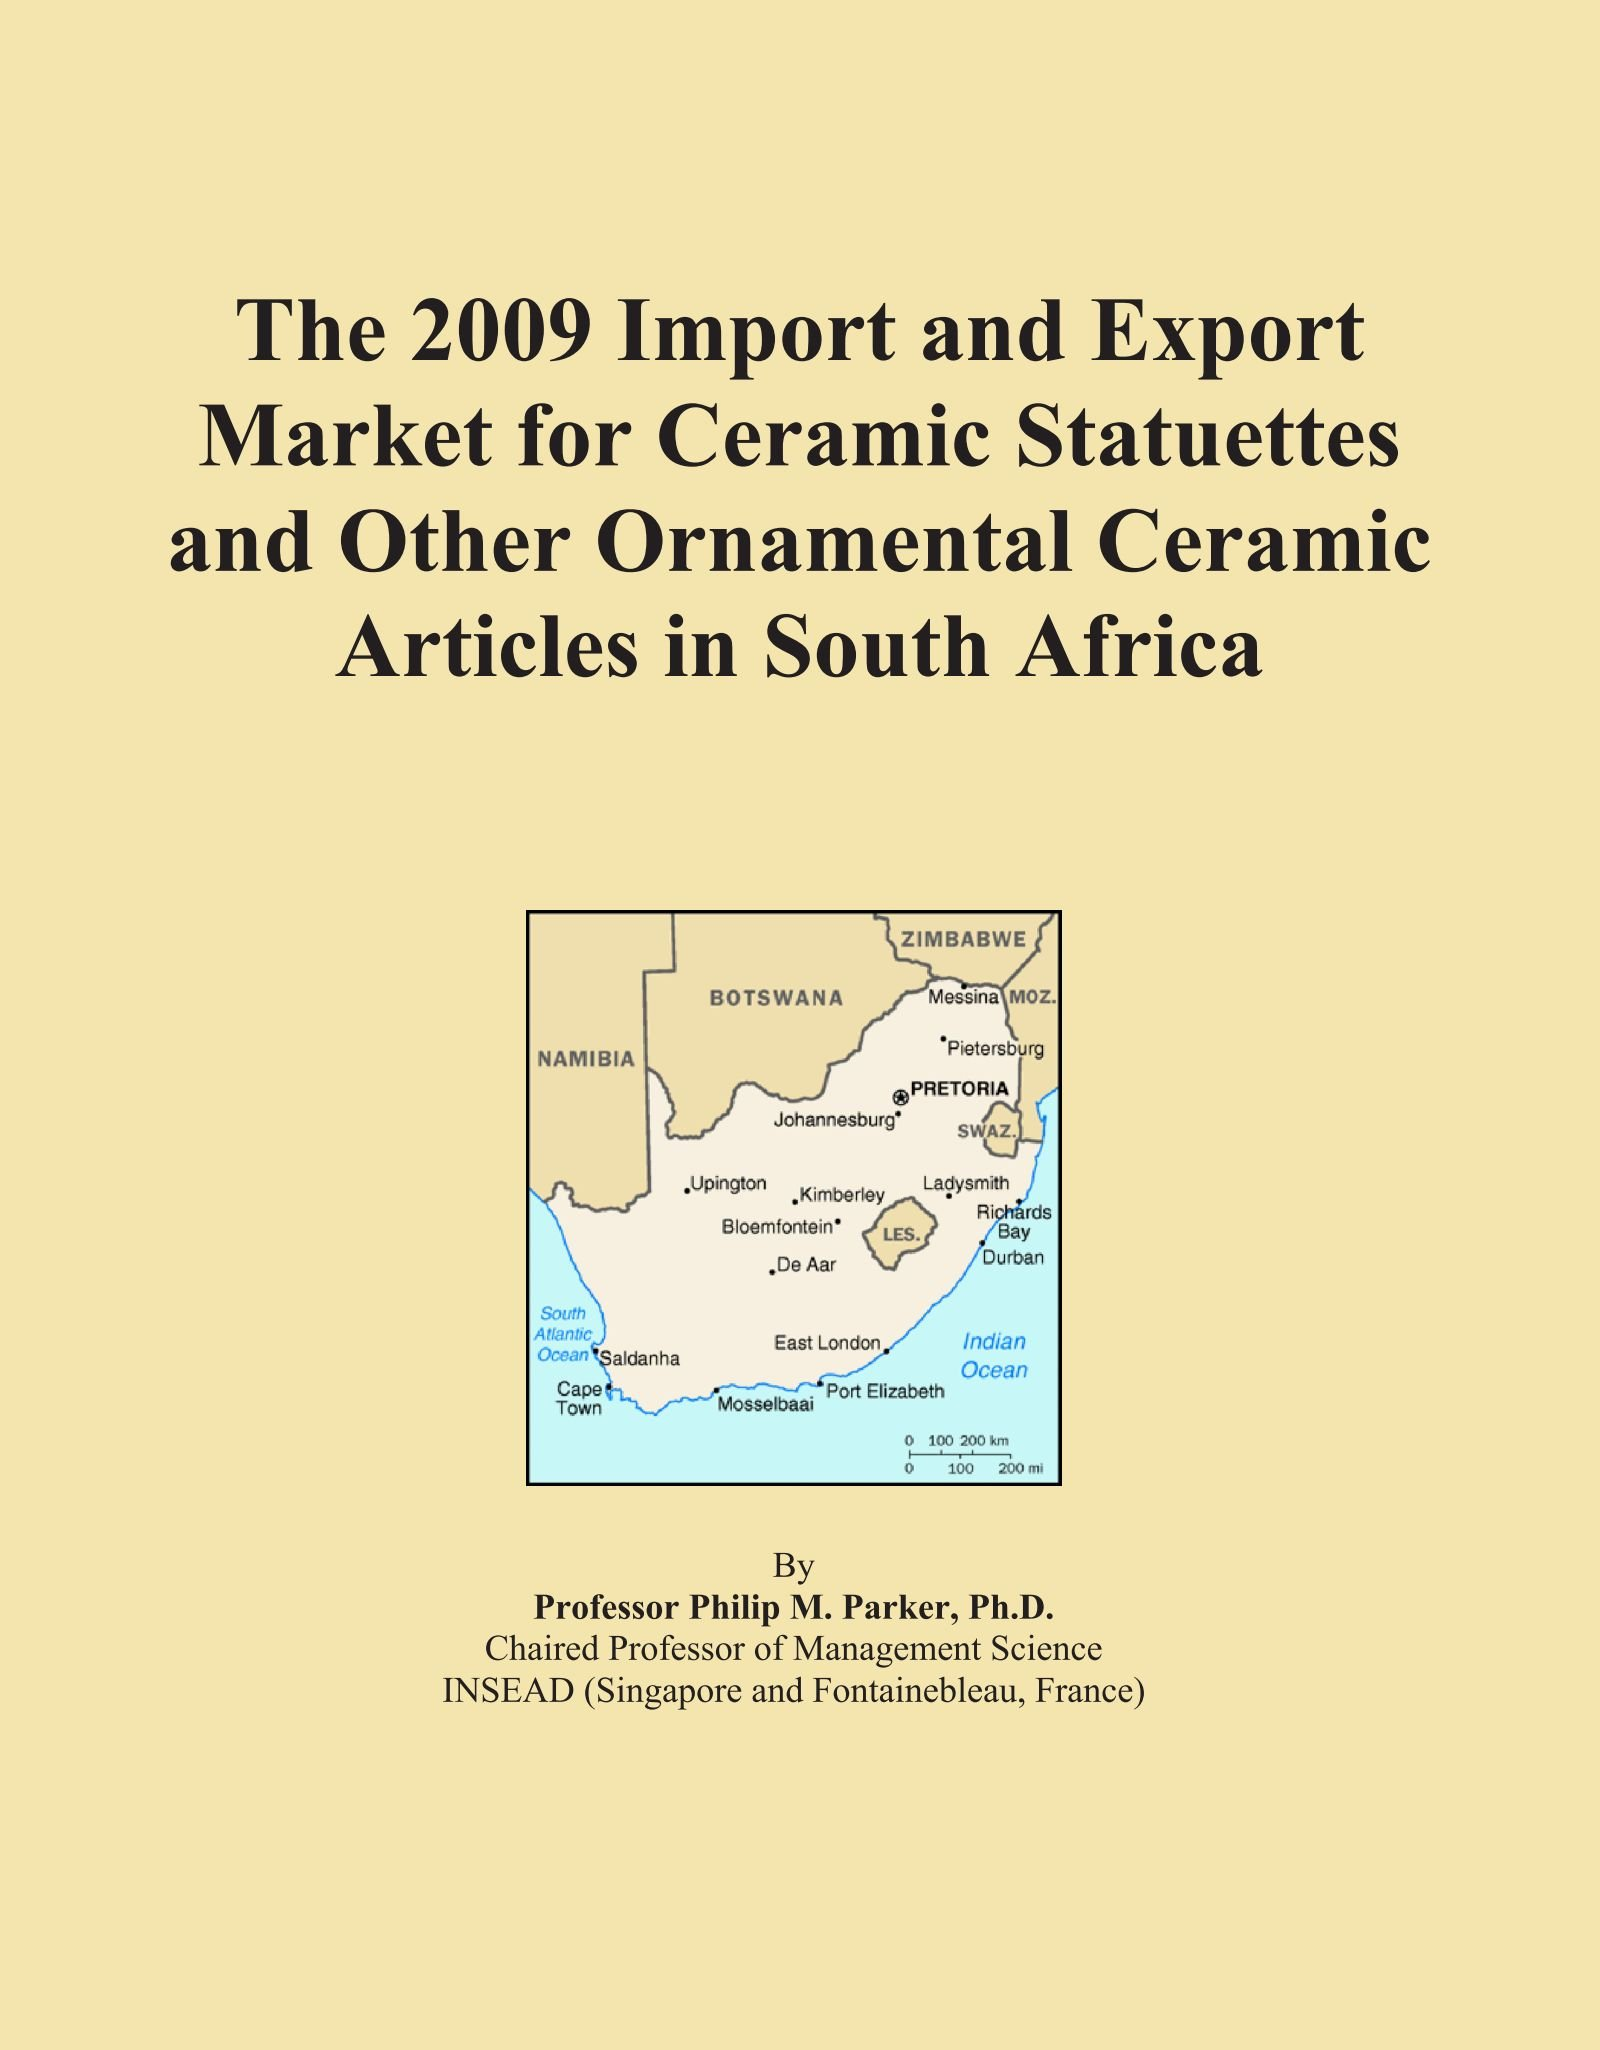 The 2009 Import and Export Market for Ceramic Statuettes and Other Ornamental Ceramic Articles in South Africa PDF